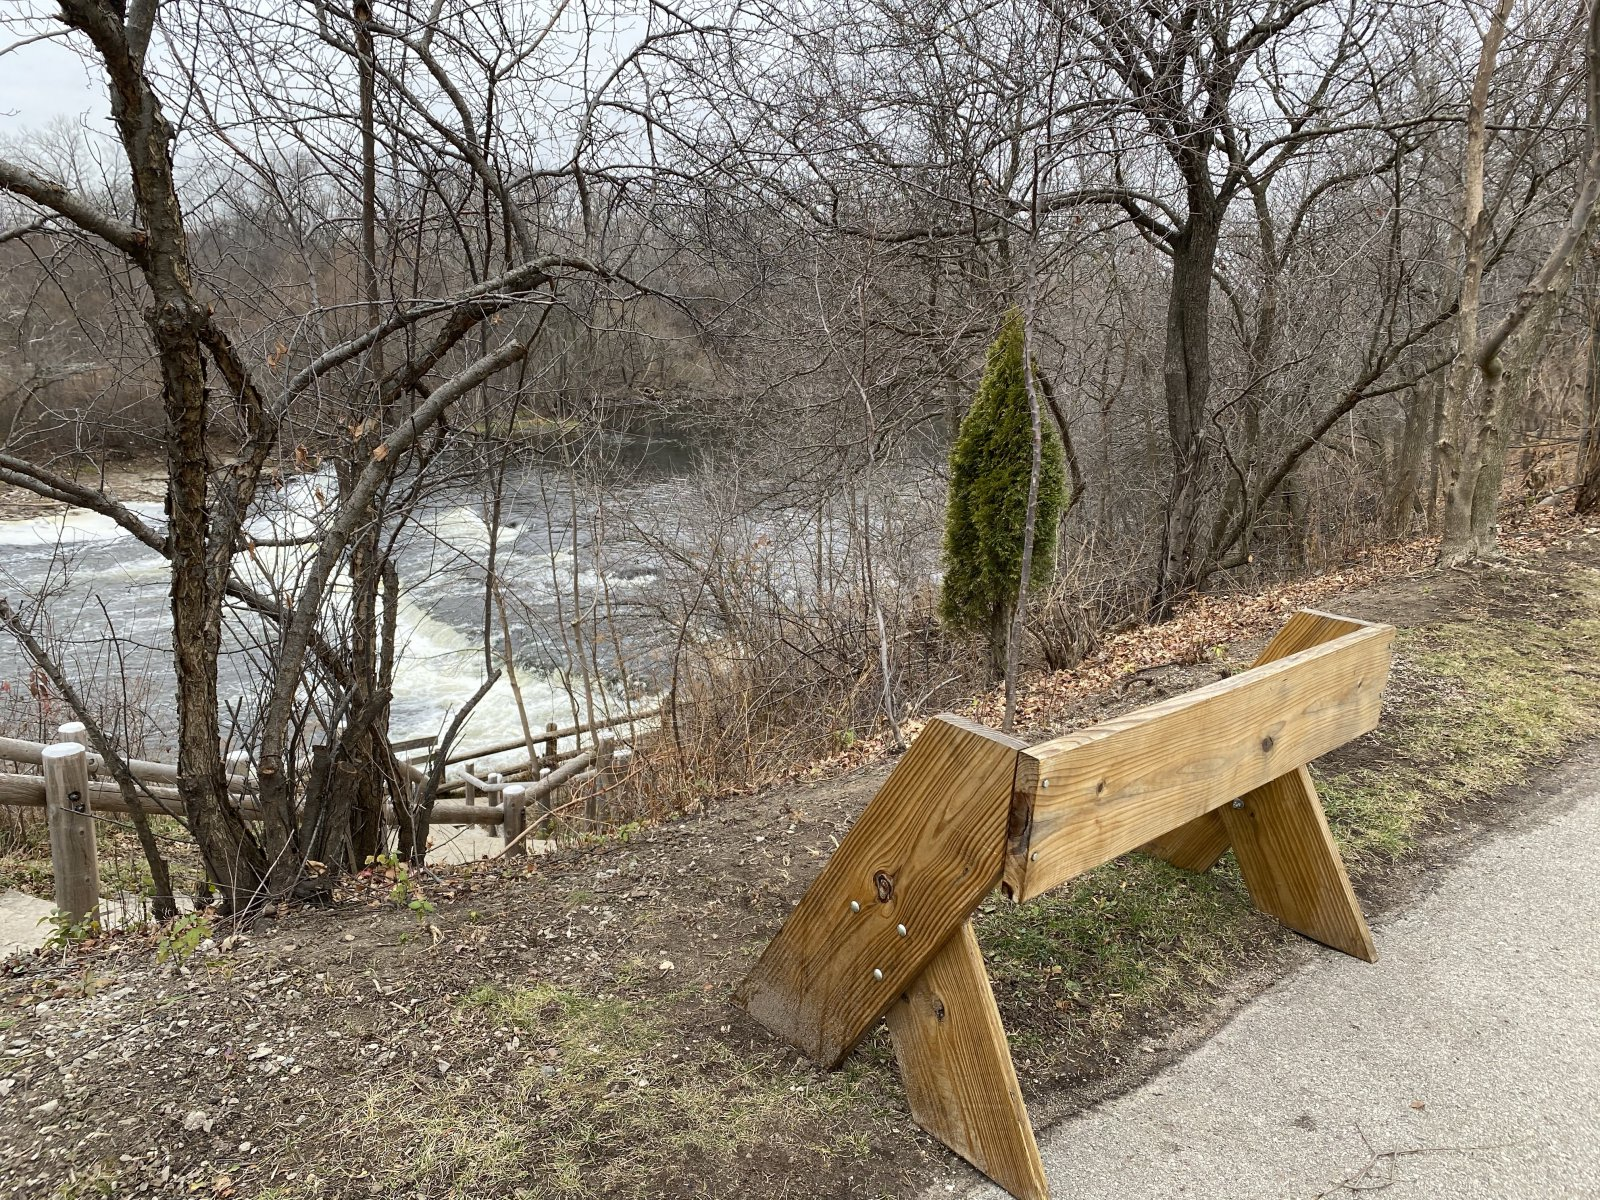 Bench installed by Friends of Estabrook Park